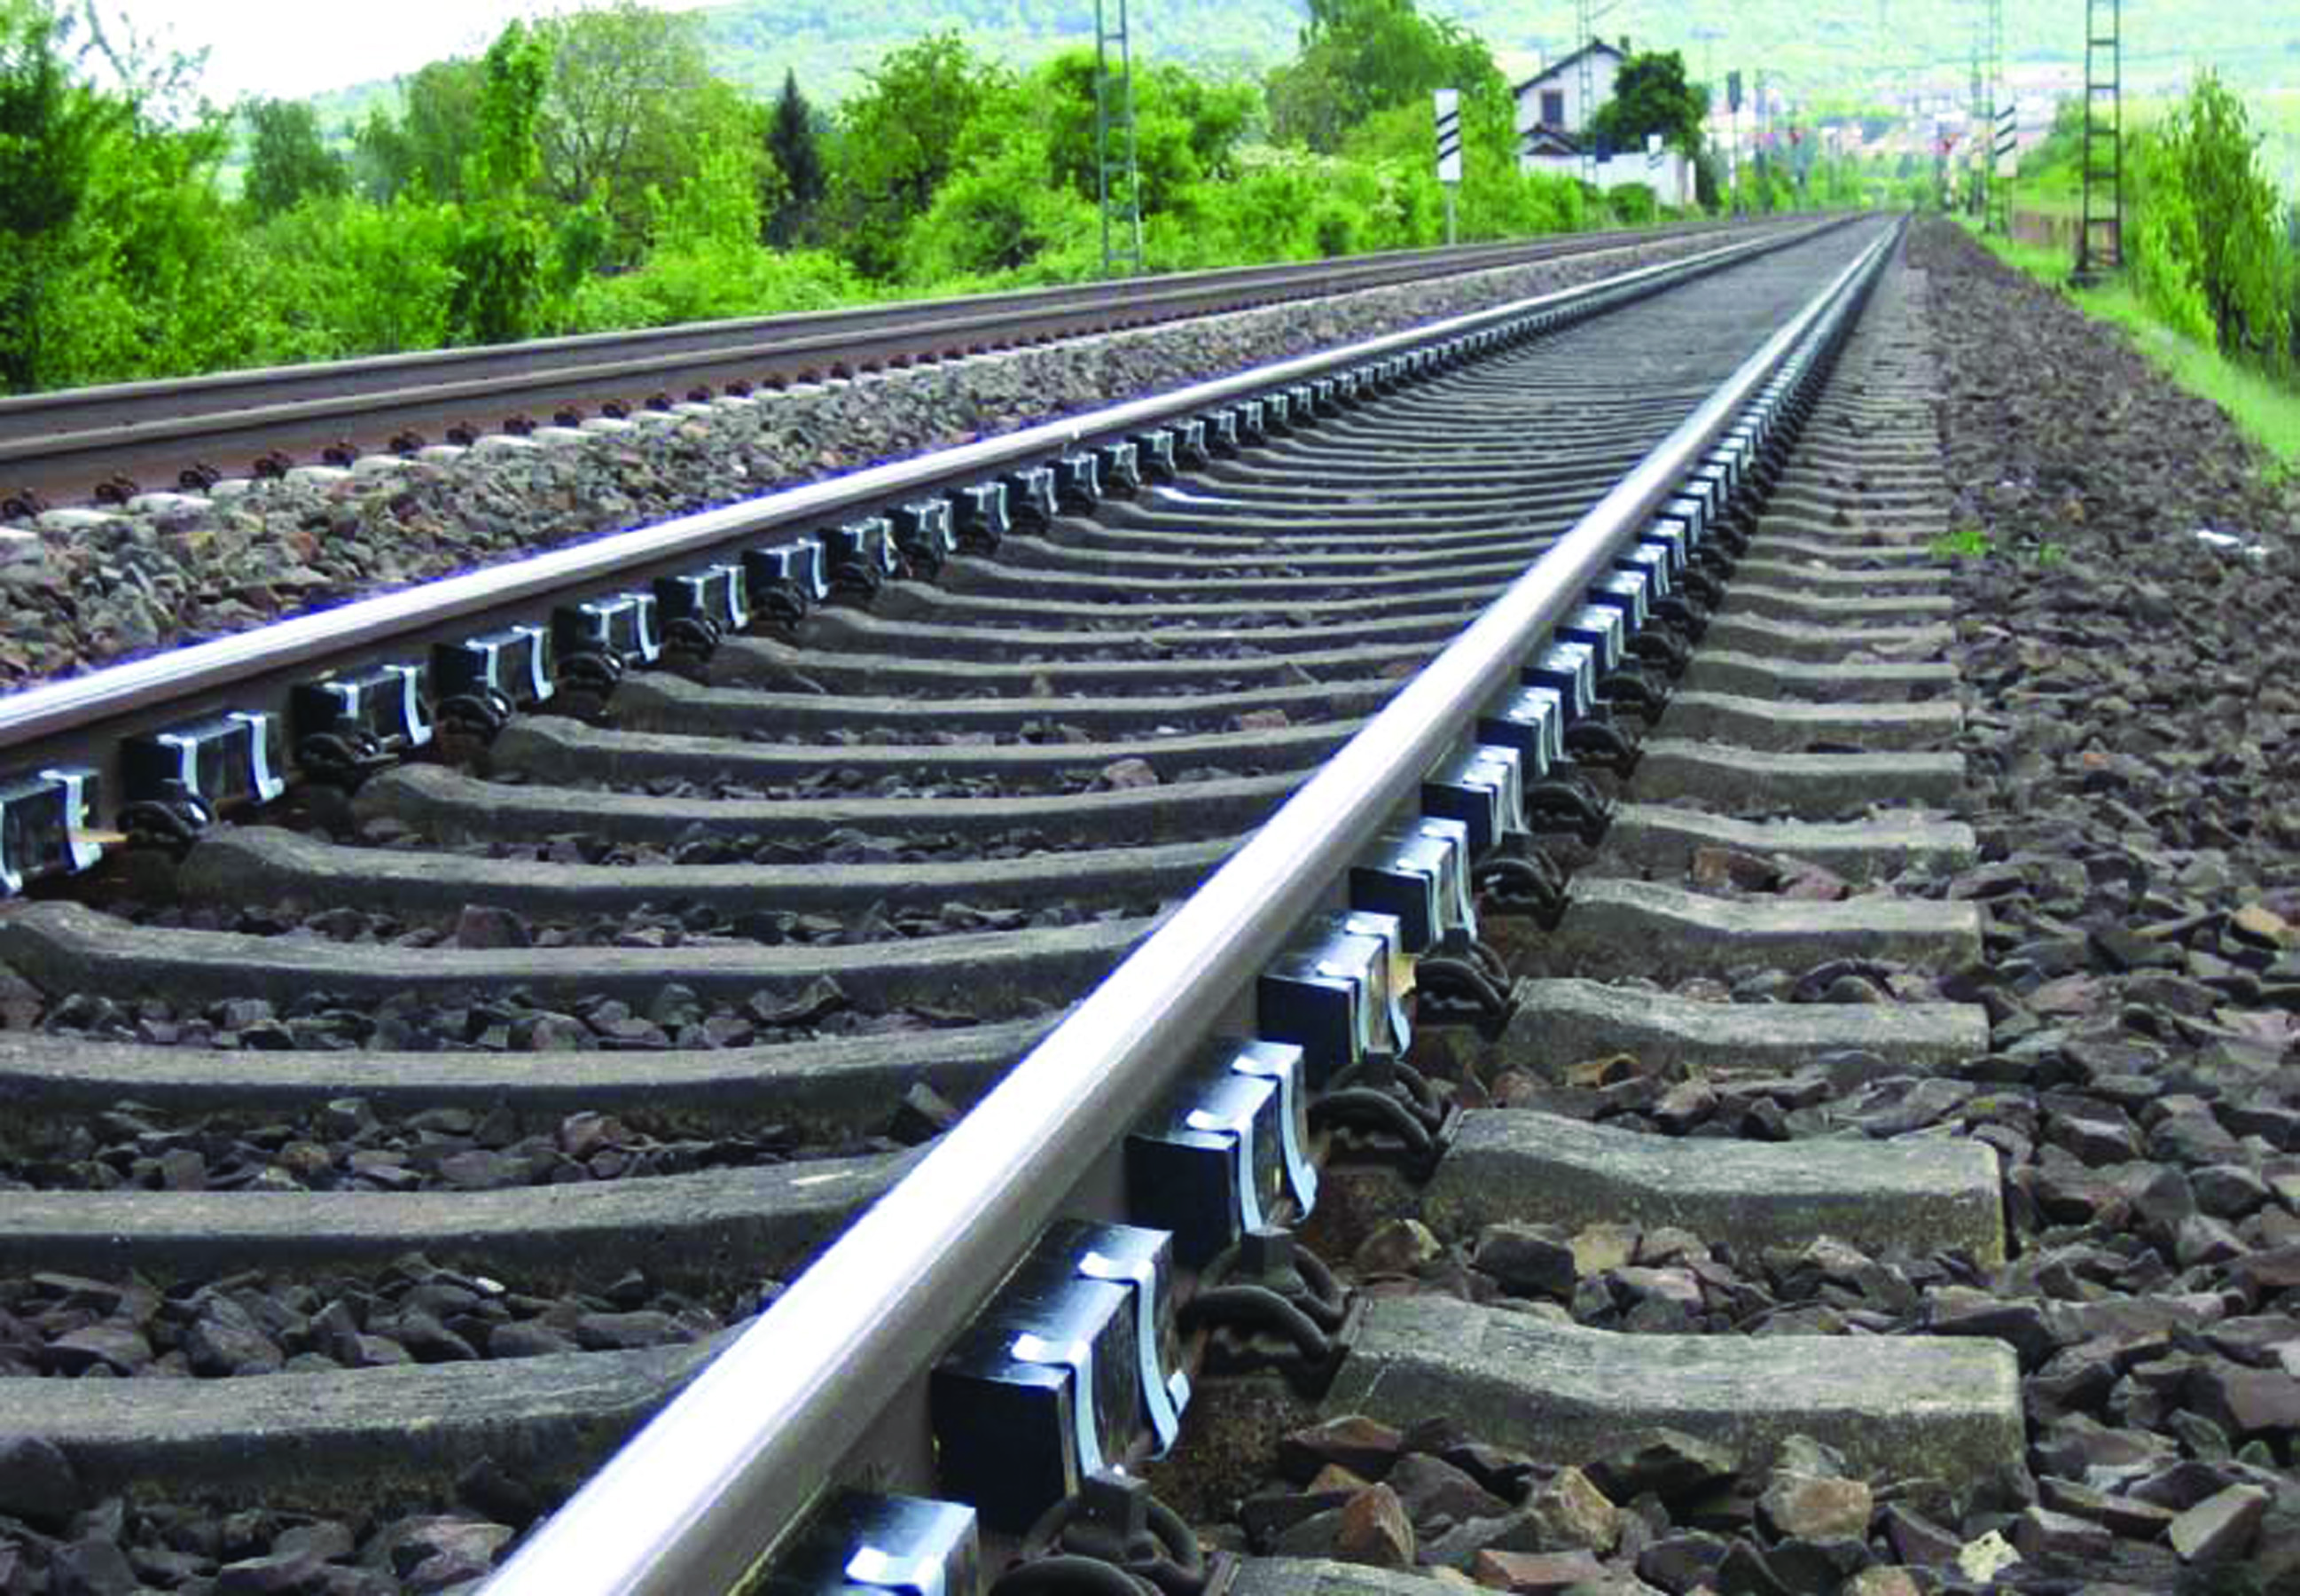 SilentTrack® Noise-Reduction Rail System: helps reduce pass-by noise